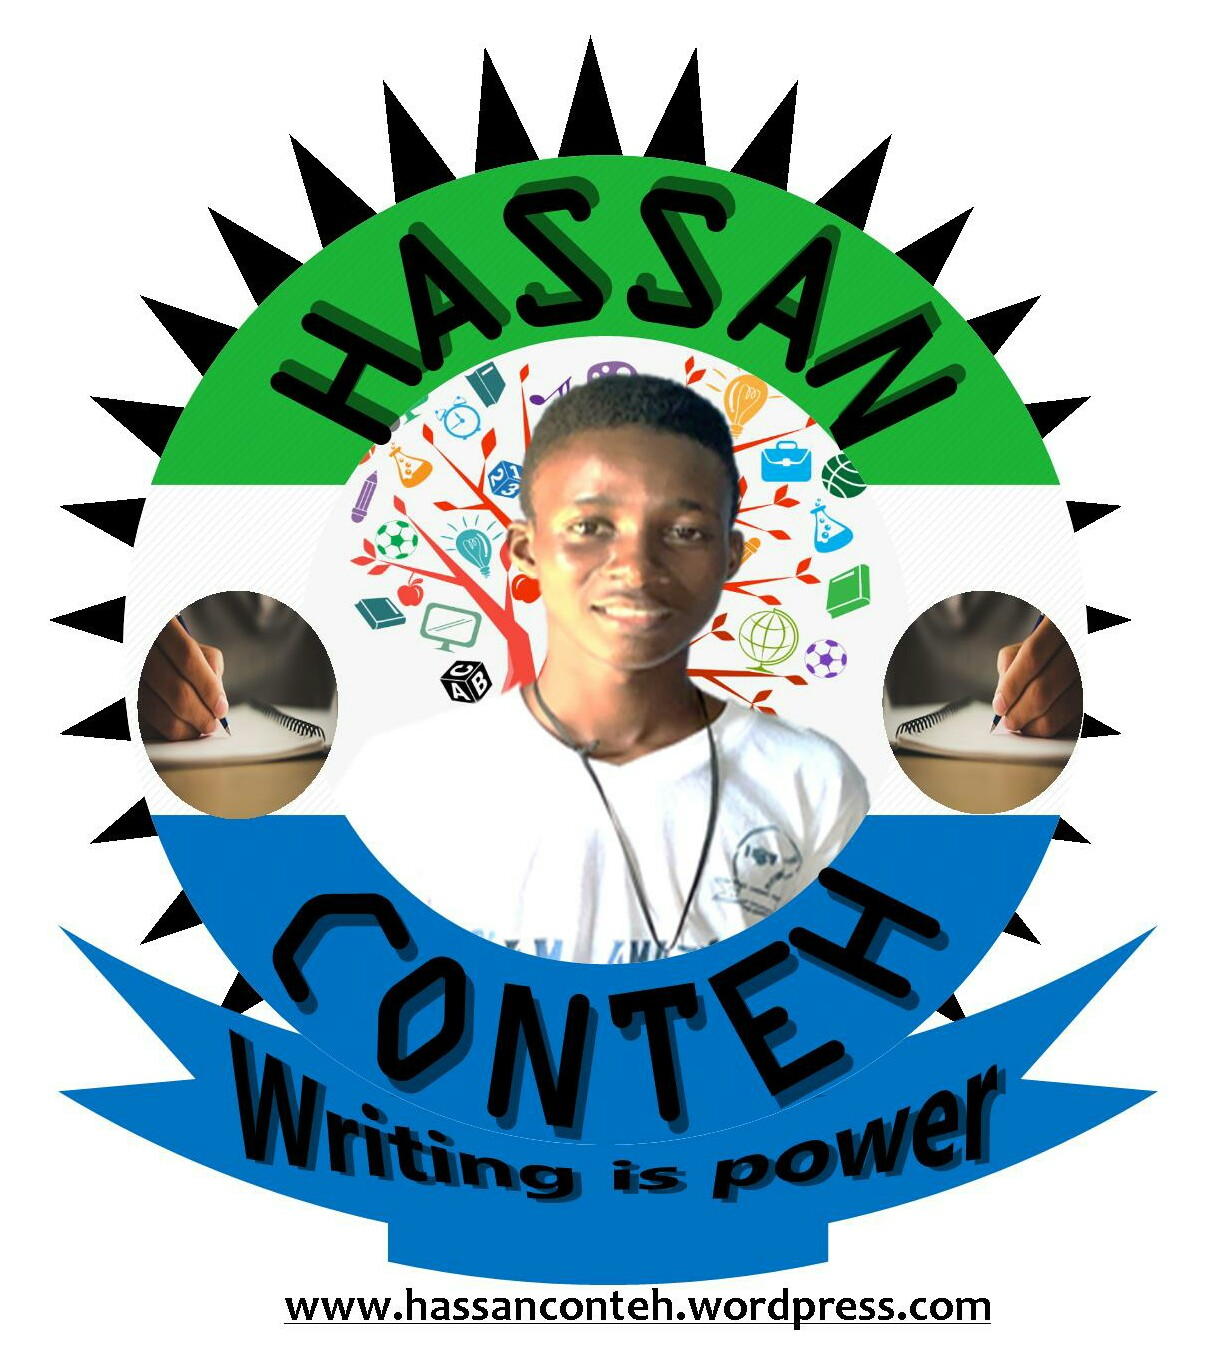 Hassan Conteh: A multi-talented young Sierra Leonean